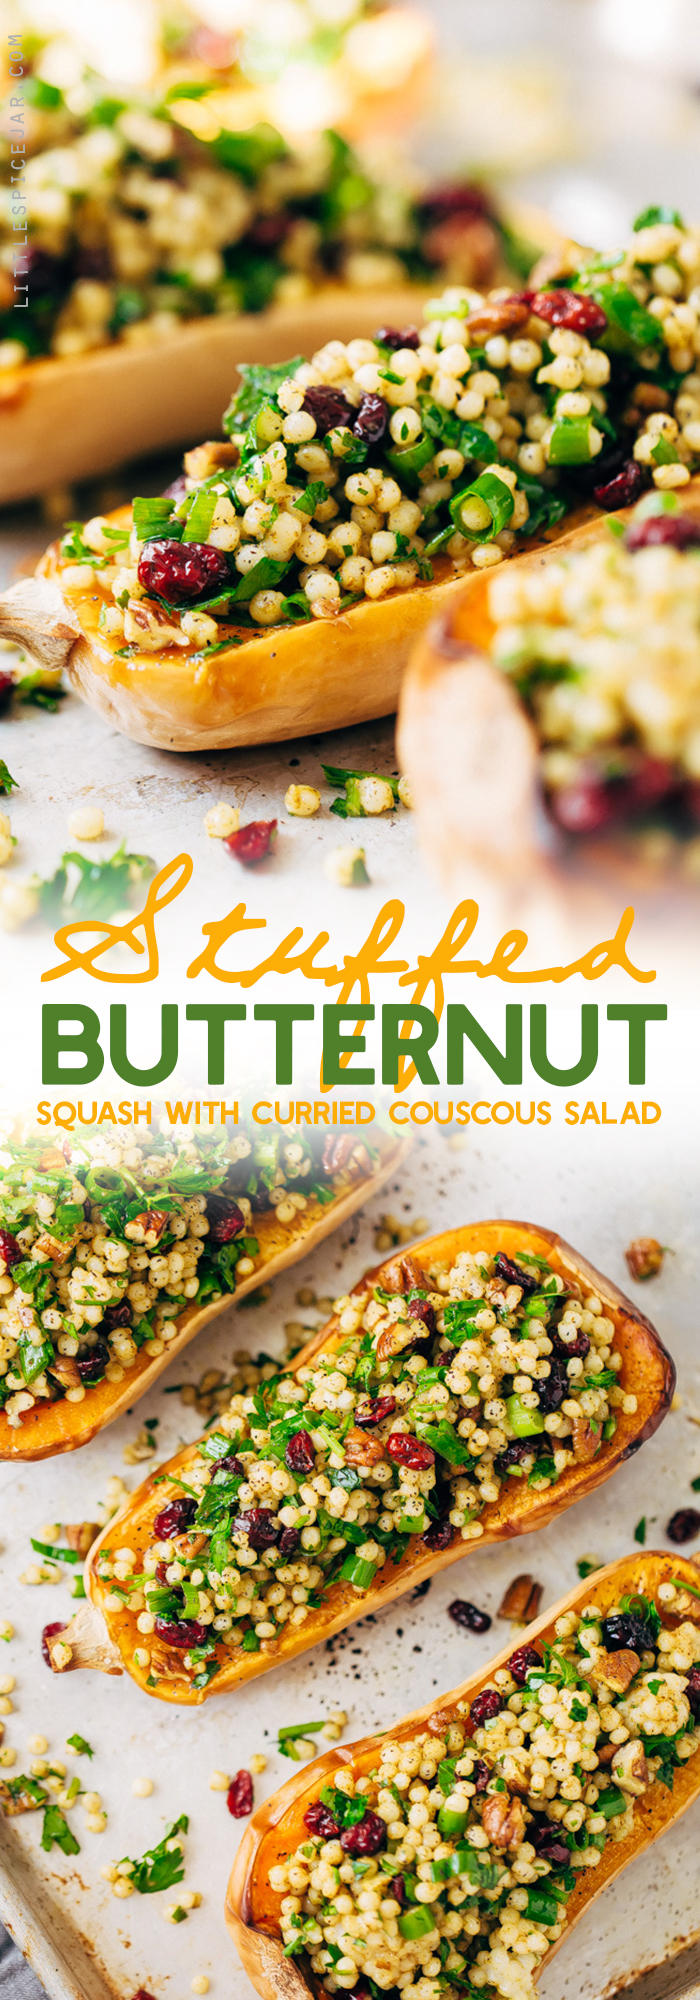 Stuffed Butternut Squash with Curried Couscous Salad - a simple side dish or main meal! Perfect for Thanksgiving. #stuffedbutternutsquash #butternutsquash #roastedbutternutsquash #couscoussalad   Littlespicejar.com